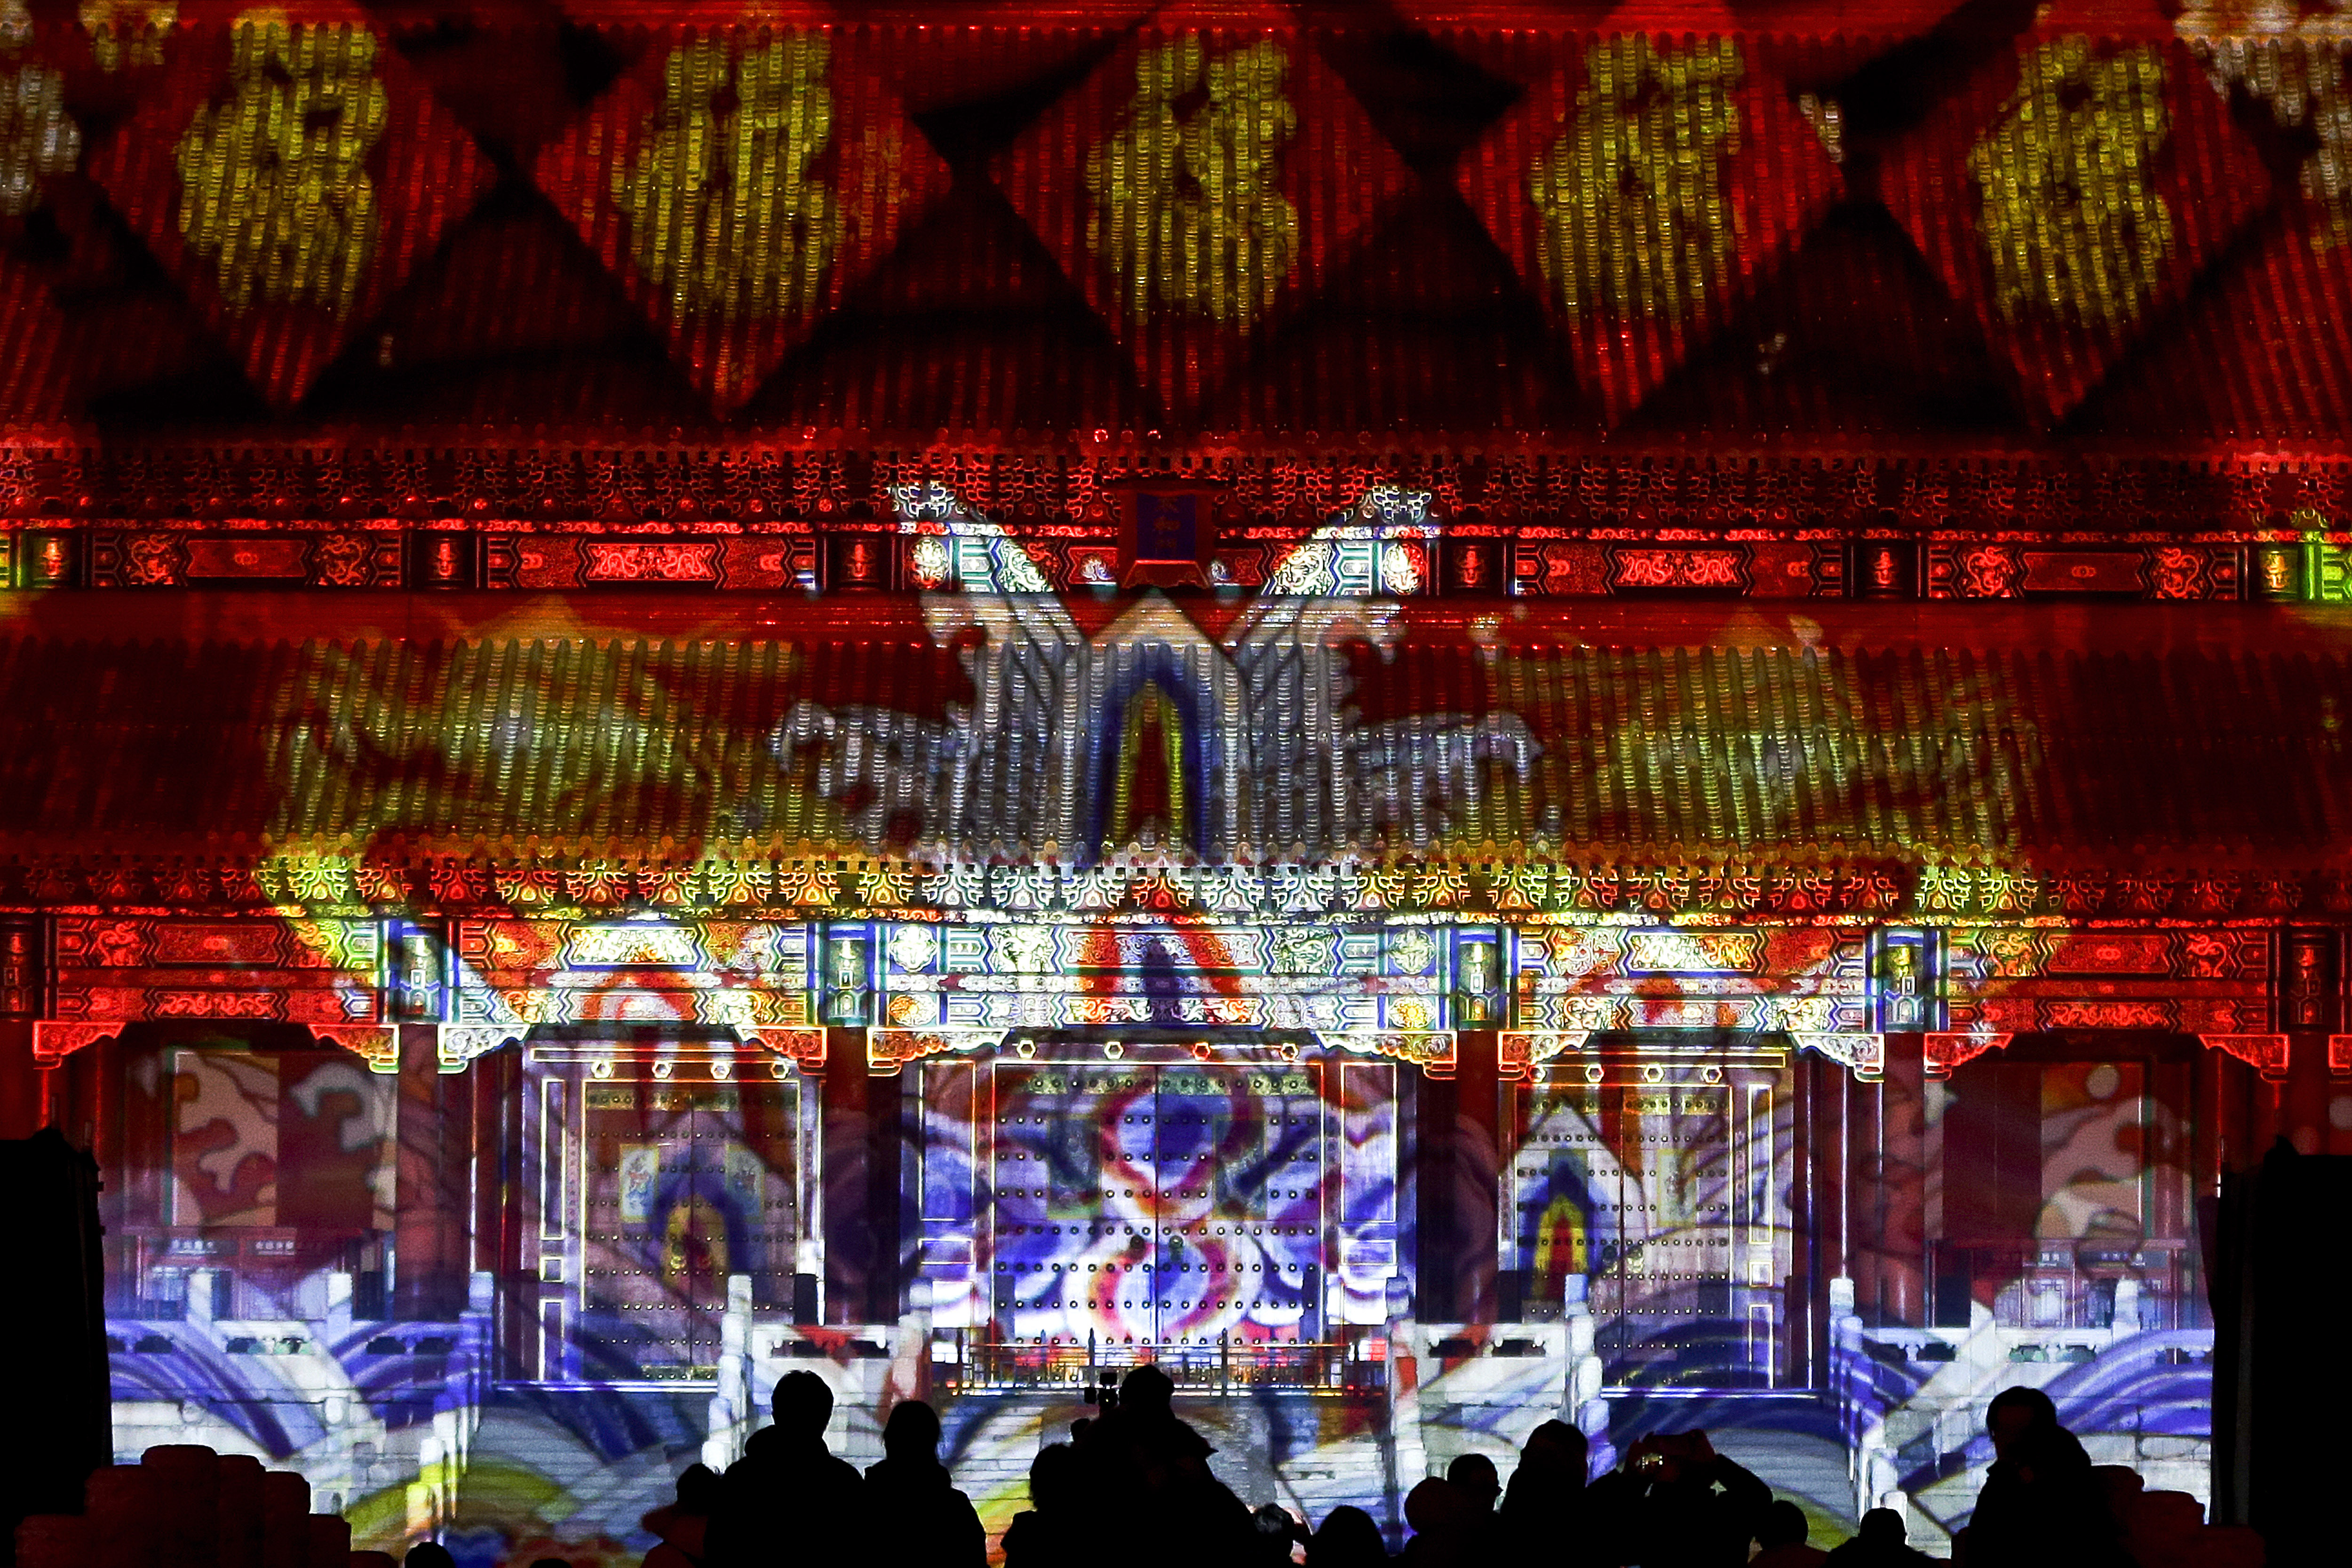 Visitors watch the Forbidden City is illuminated with colorful lights during the Lantern Festival in Beijing, Tuesday, Feb. 19, 2019. Beijing's Palace Museum was illuminated and opened for night visits to celebrate China's Lantern Festival. For the first time since it was established 94 years ago, the Palace Museum, also known as the Forbidden City, extended opening hours till nighttime and lit up part of its cultural relics buildings. (AP Photo/Andy Wong)